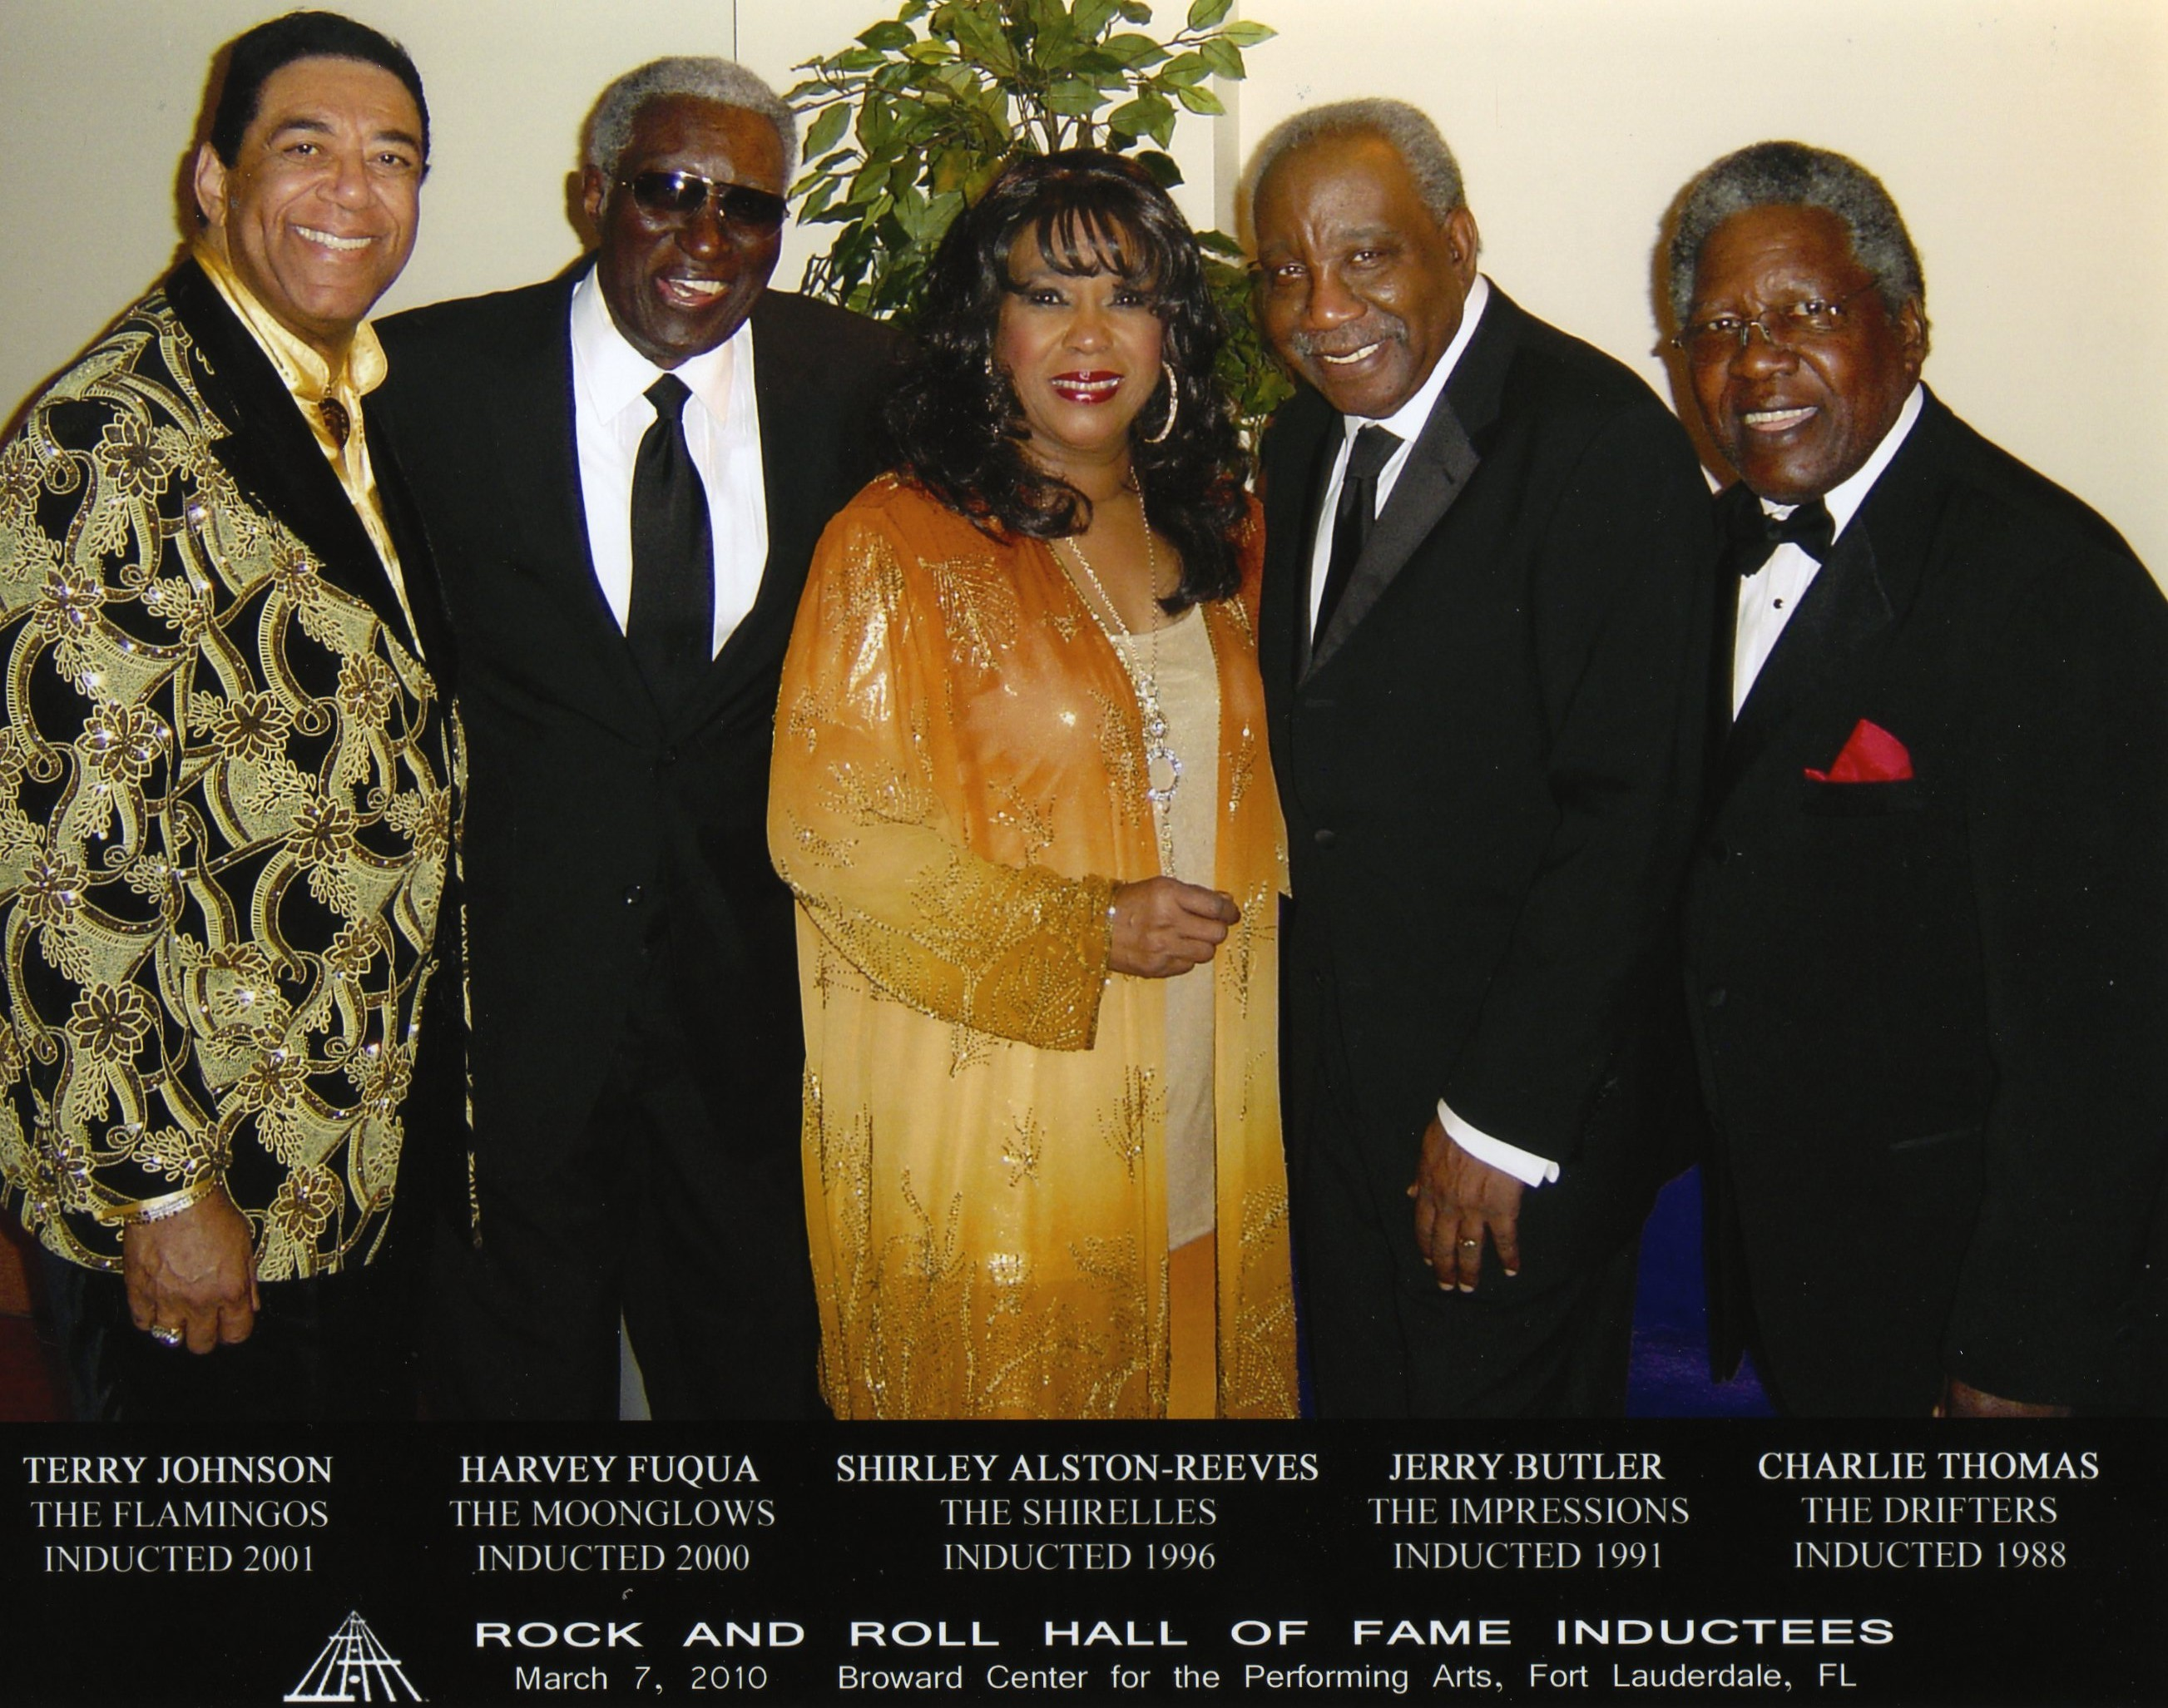 Rock & Roll Hall of Famers: Terry Johnson, Harvey Fuqua, Shirley Alston-Reeves, Jerry Butler, Charlie Thomas. (Photo by Joe Mirrione)